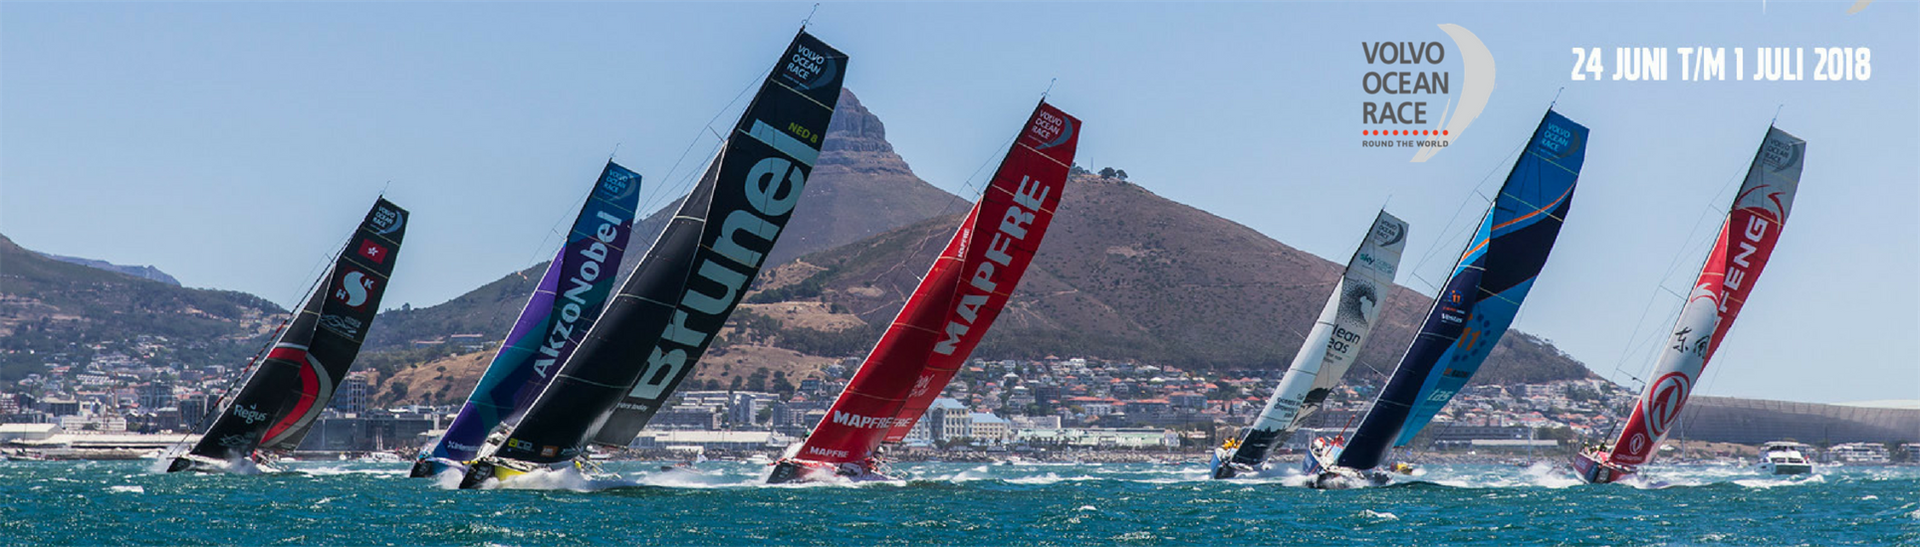 Volvo Ocean Race Finish